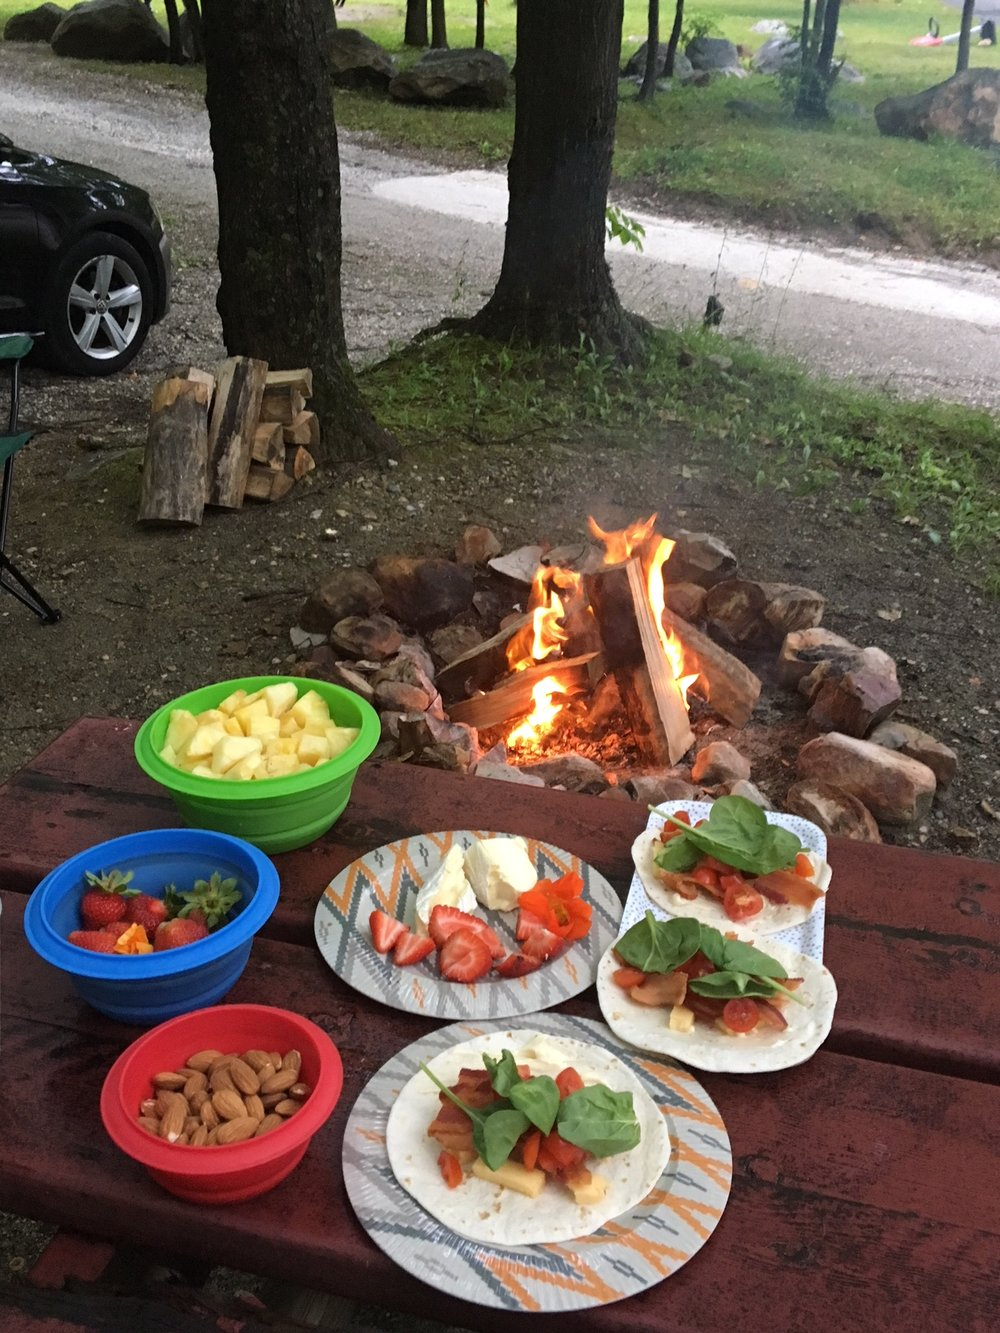 Bacon, cheddar, spinach and tomato wraps around the campfire. Pair with fruits, almonds and other snacks for a camping trip. Finger food at it's finest!